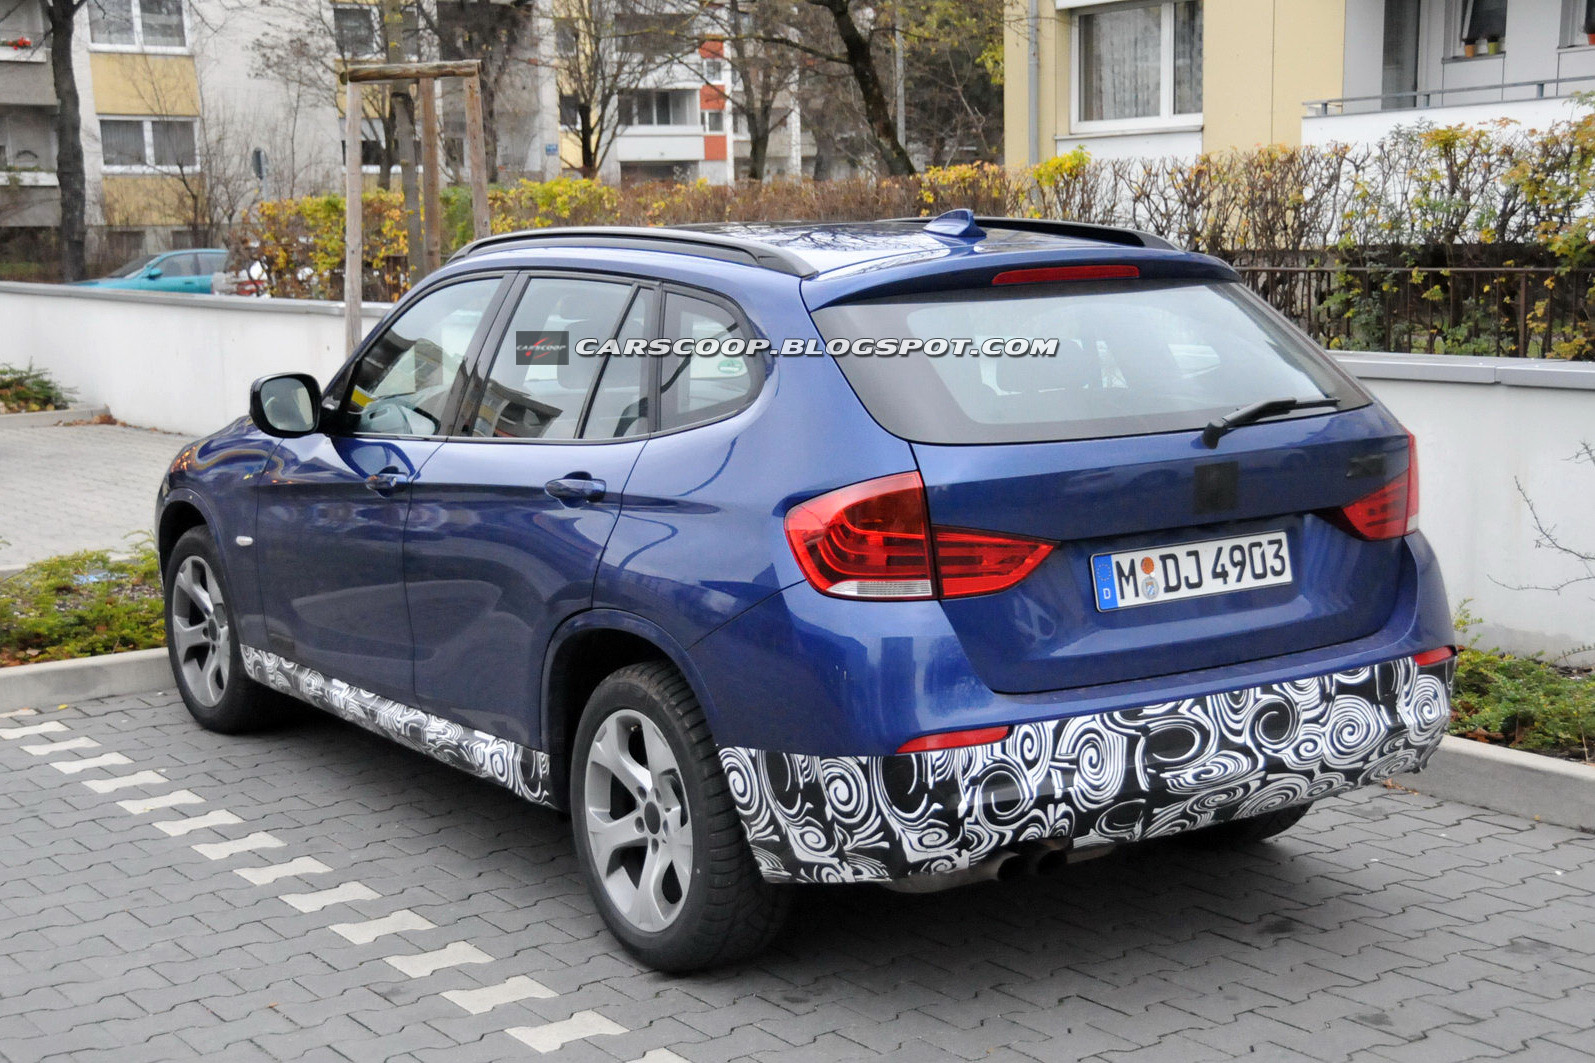 neue spyshots zum m paket f r den bmw x1 e84. Black Bedroom Furniture Sets. Home Design Ideas